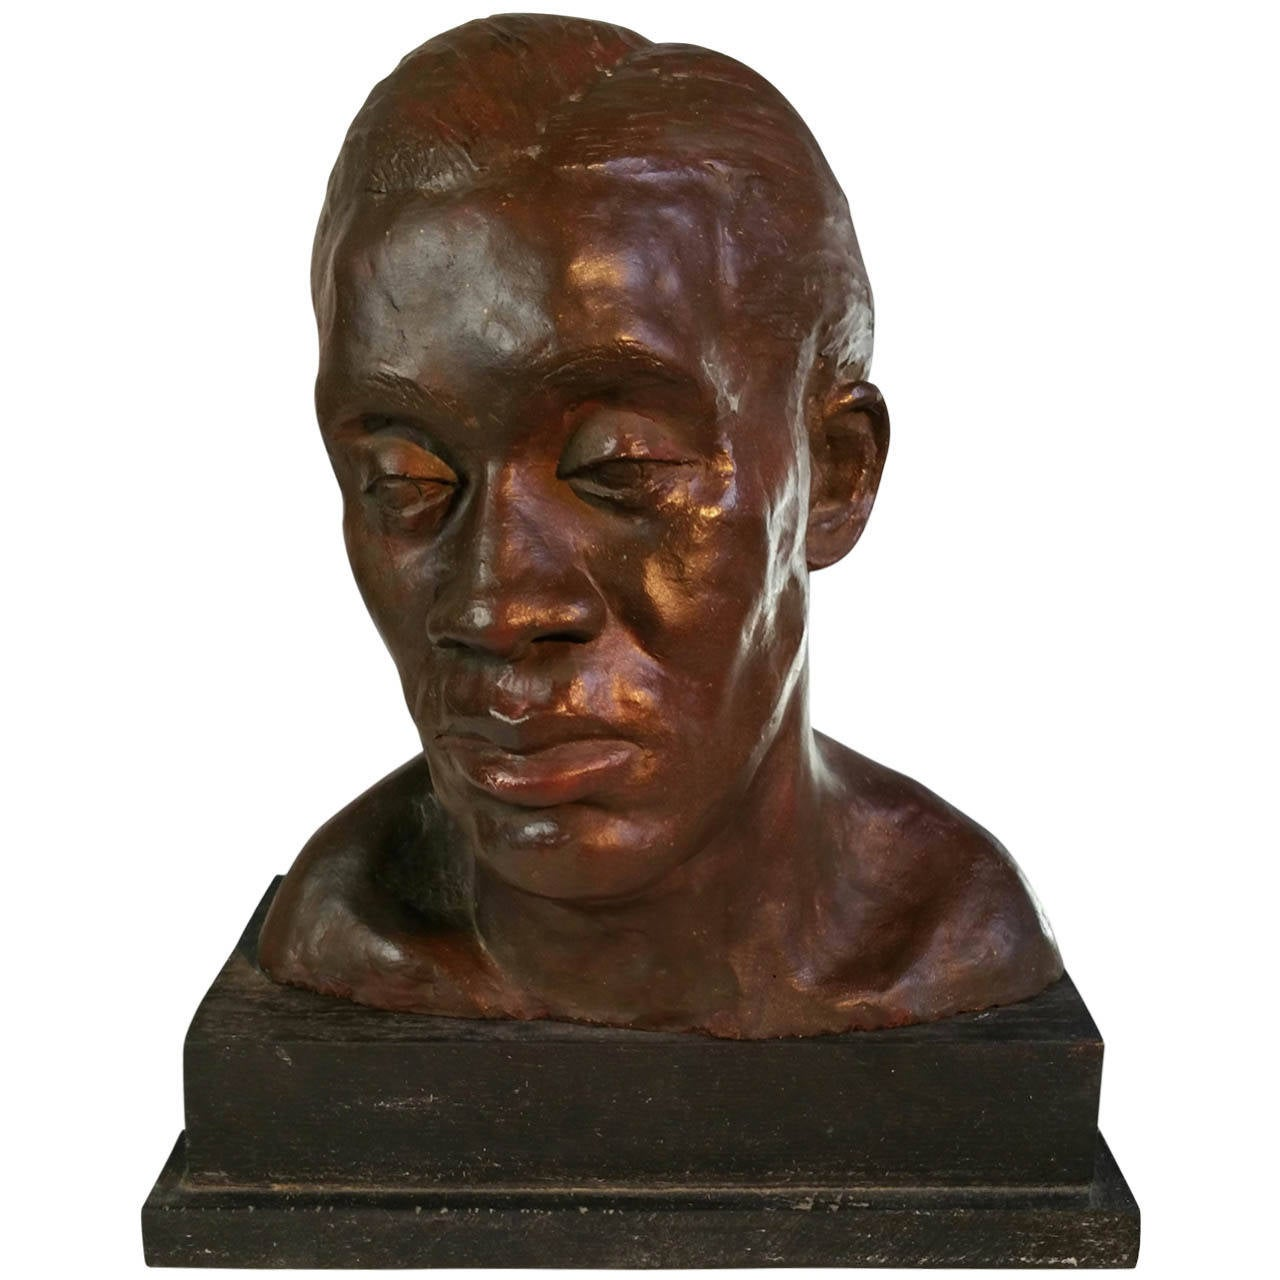 African American Bronzed Plaster Bust, Harlem Renaissance, 1930s